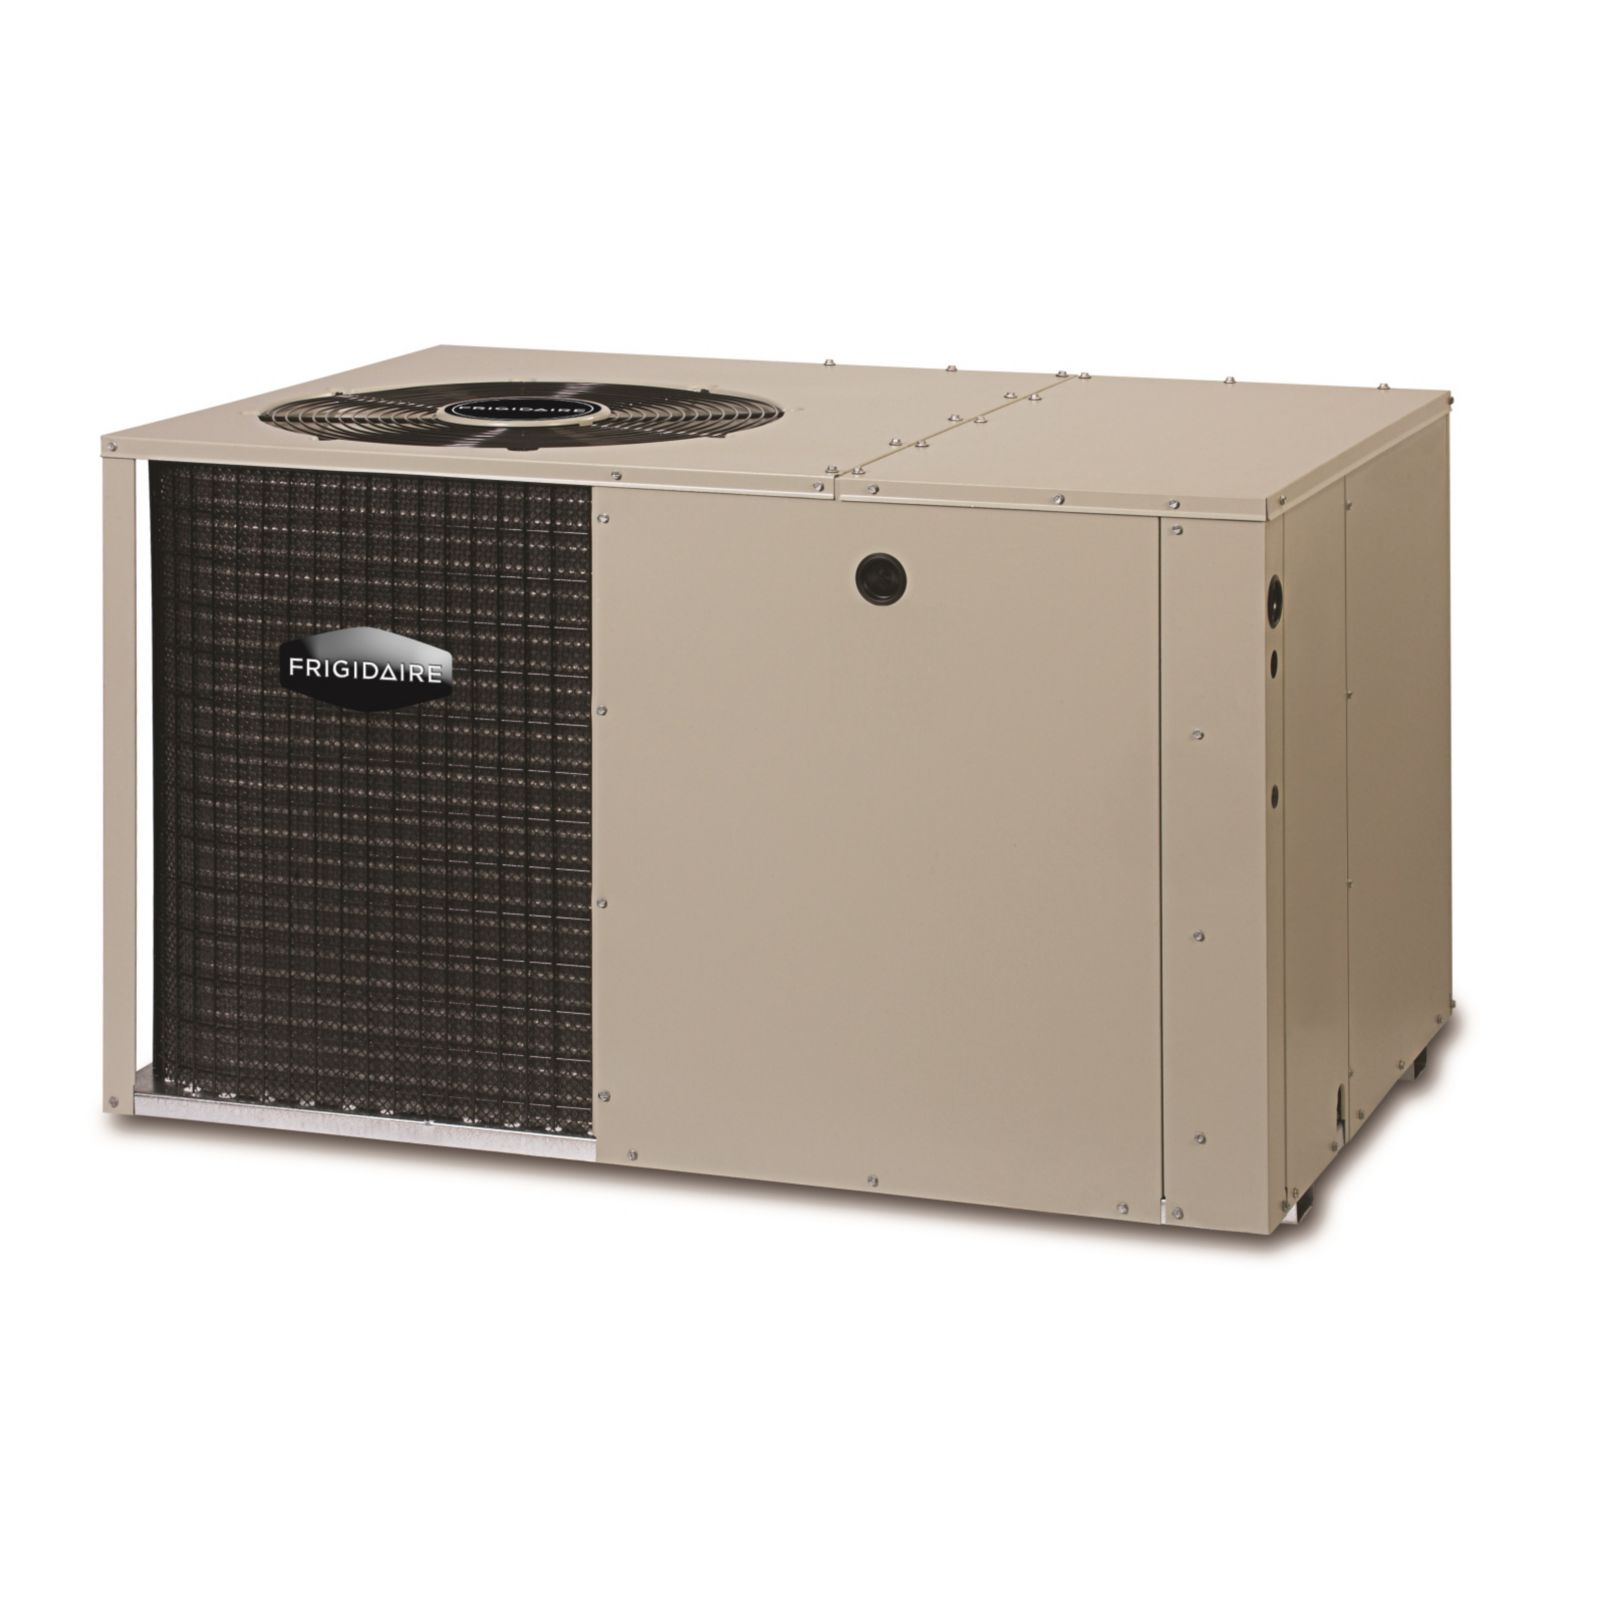 Frigidaire 922416 - P7RE-048K (AHRI 7615303) 4 Ton 14 SEER, Single Packaged Air Conditioner, R410A